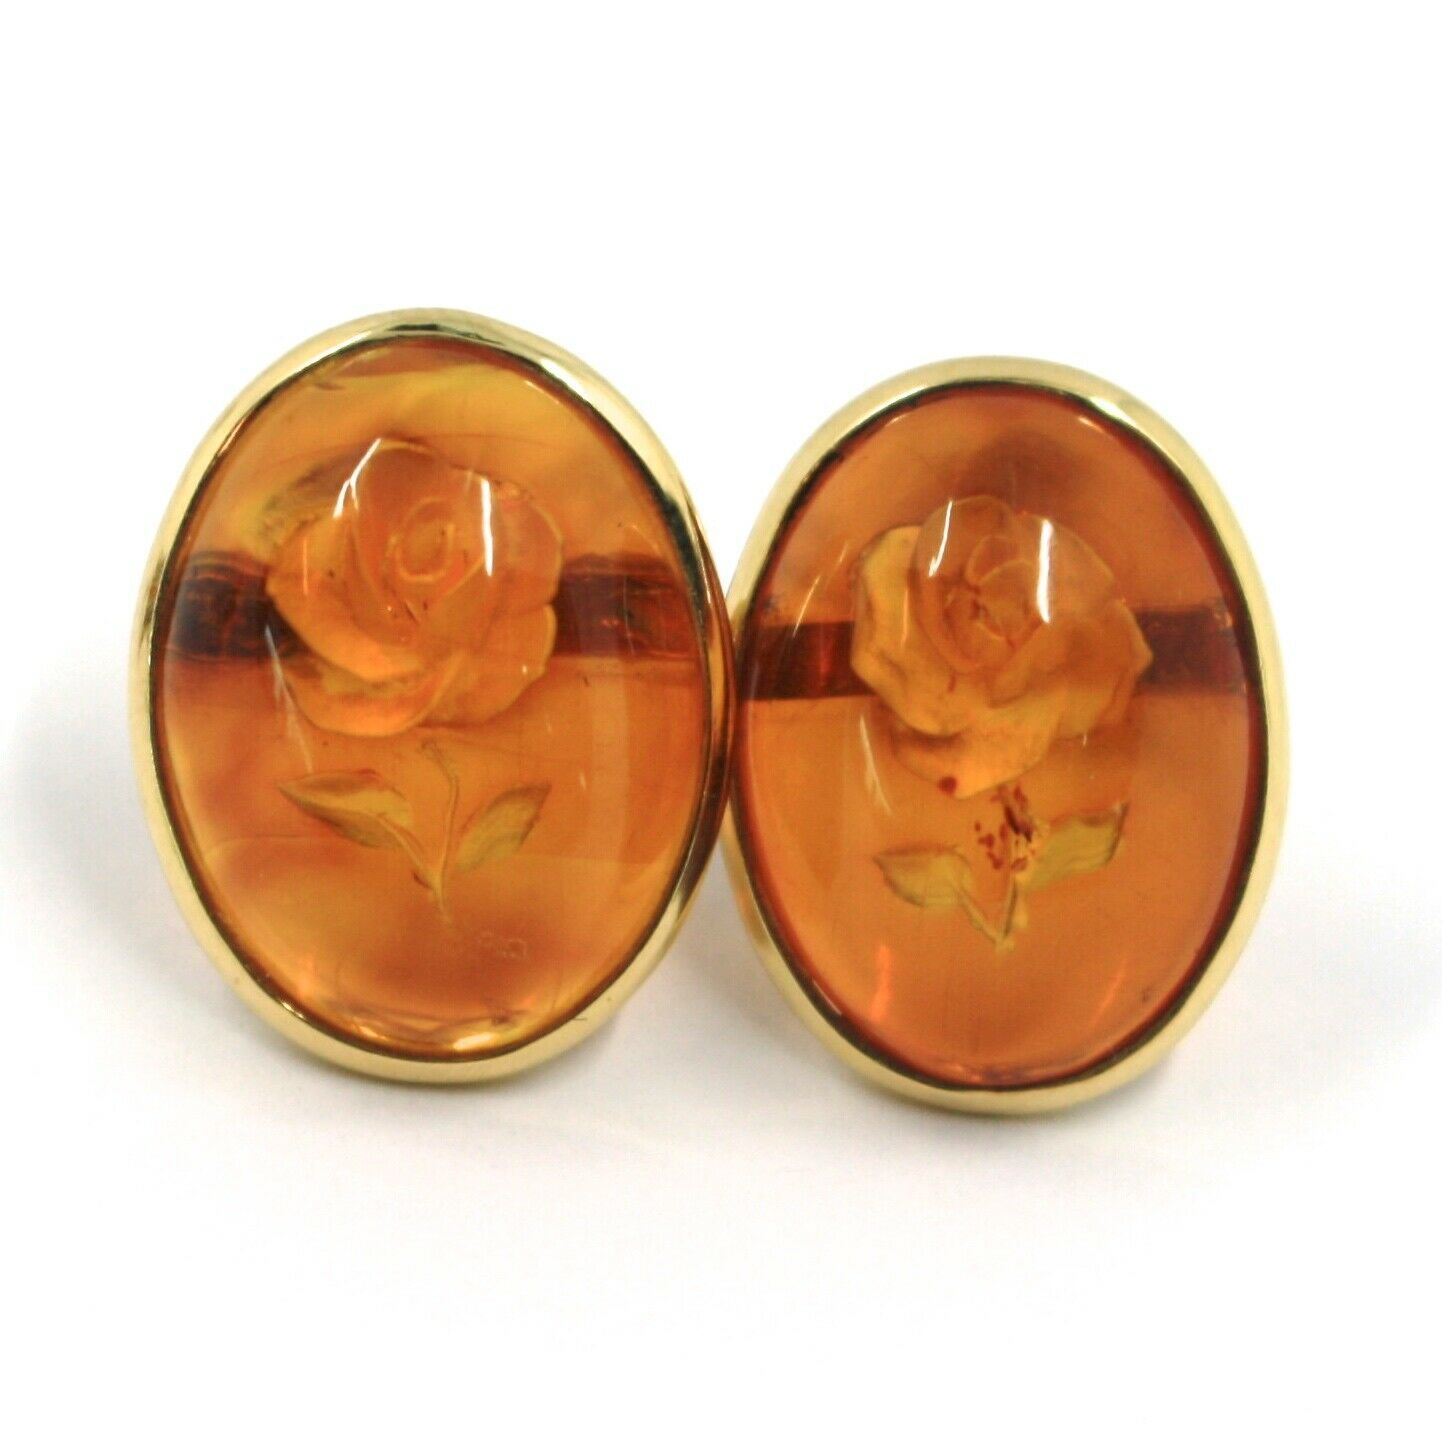 18K YELLOW GOLD EARRINGS, CABOCHON CENTRAL OVAL AMBER ENGRAVED ROSES FLOWERS